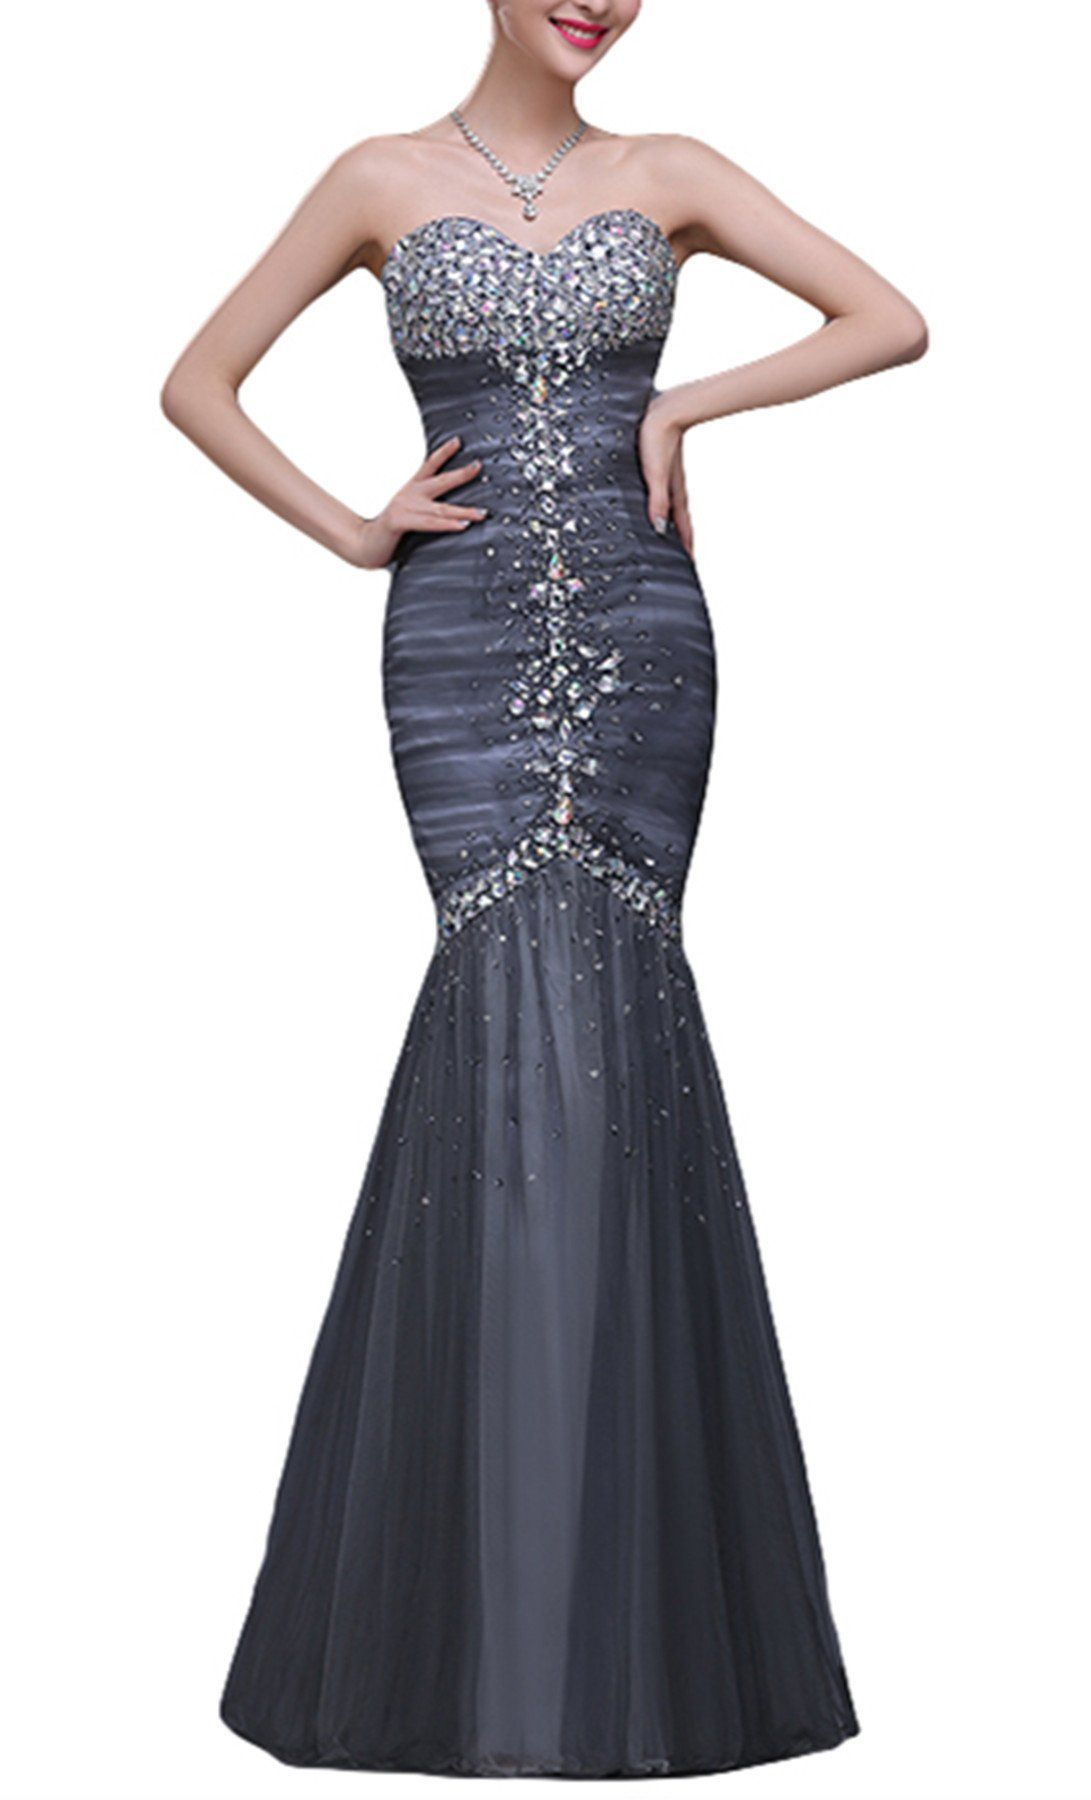 Limatry women long section of highend fashion fishtail prom formal